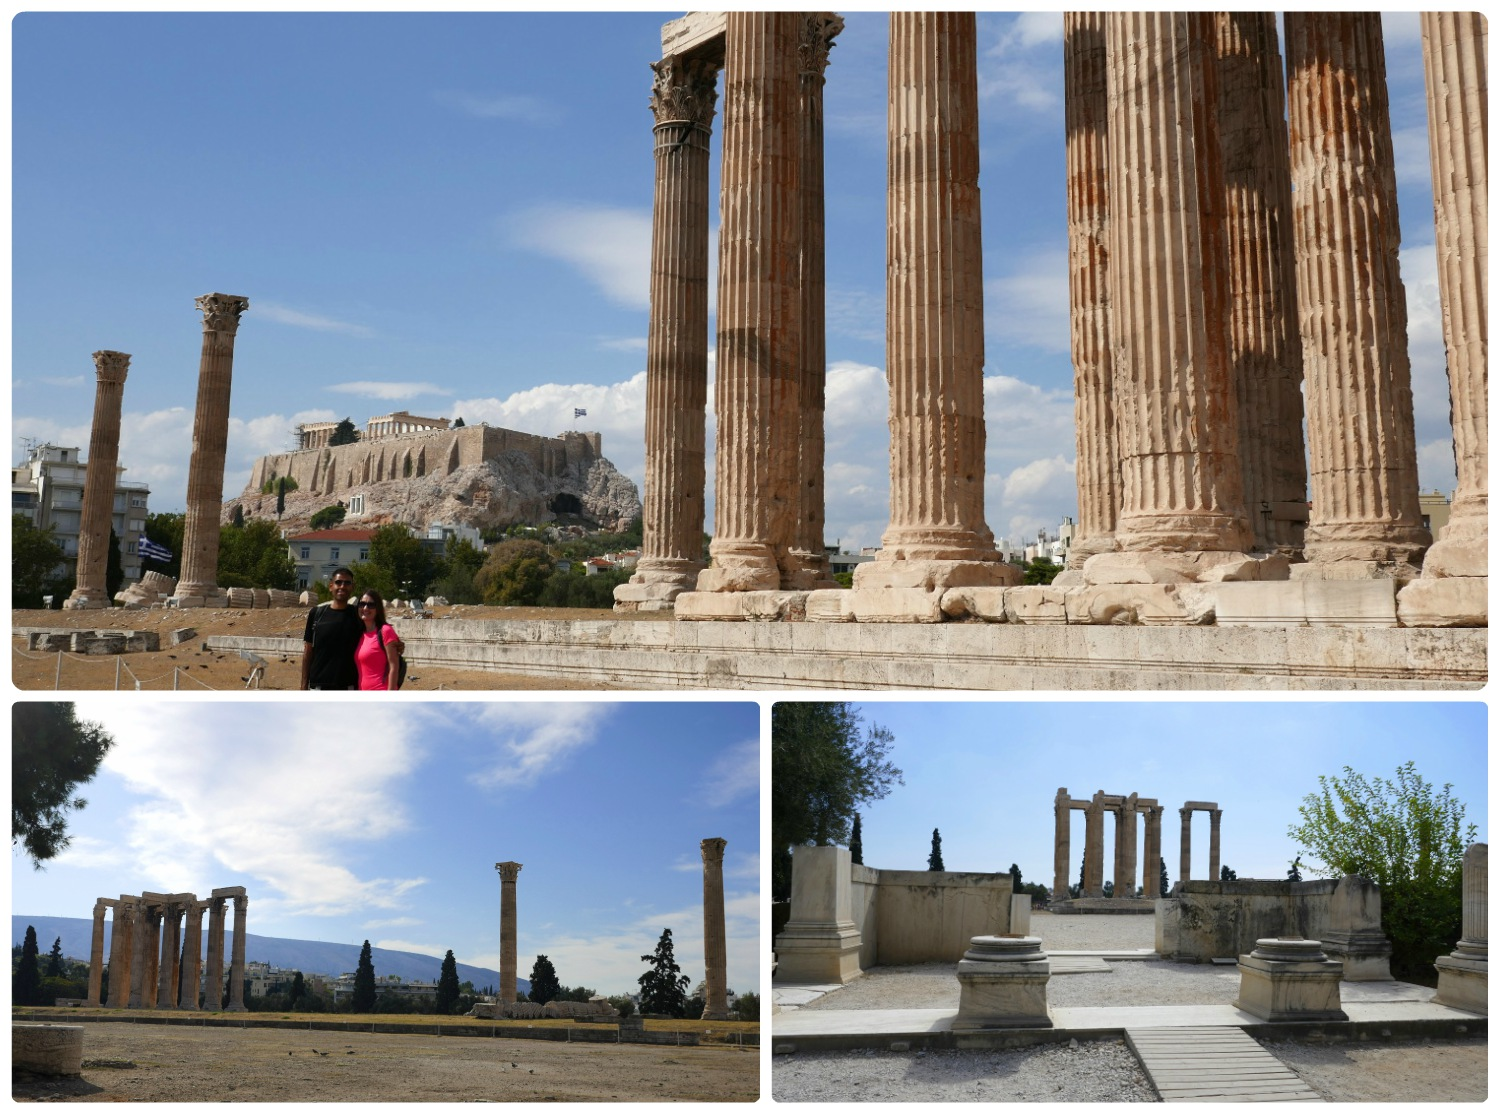 The Temple of Olympian Zeus is included in the Athens Combined Ticket. It's worth noting that the top image and the bottom right image are taken within the area of the site that requires a ticket. However, the bottom left image is taken from a public spot behind the Arch of Hadrian.